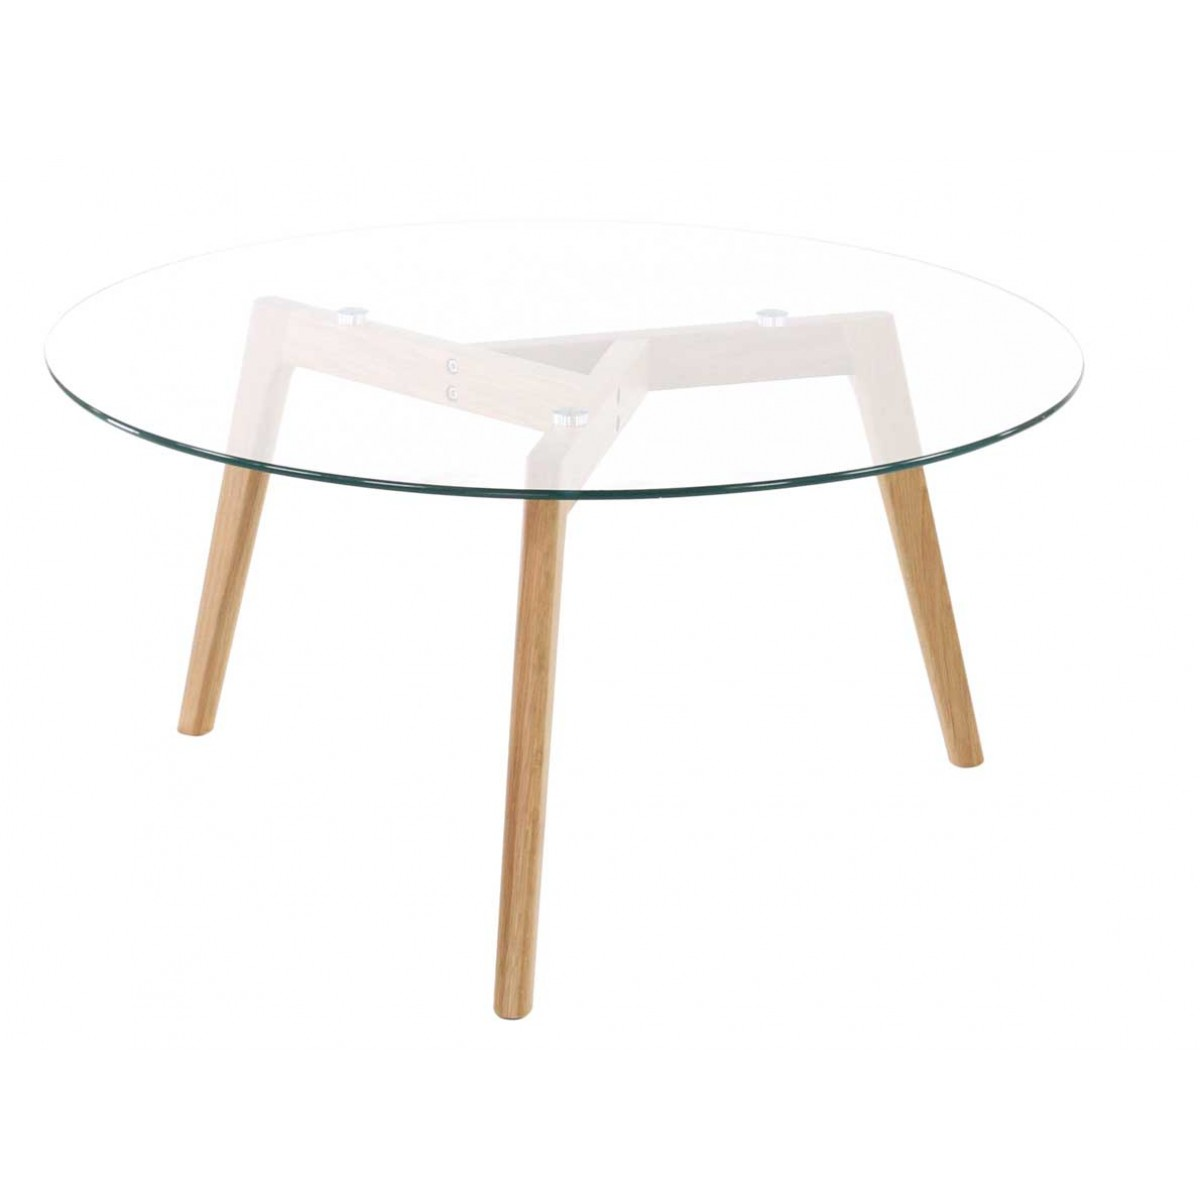 Table basse en verre ronde design scandie mooviin for Table basse scandinave verre et bois